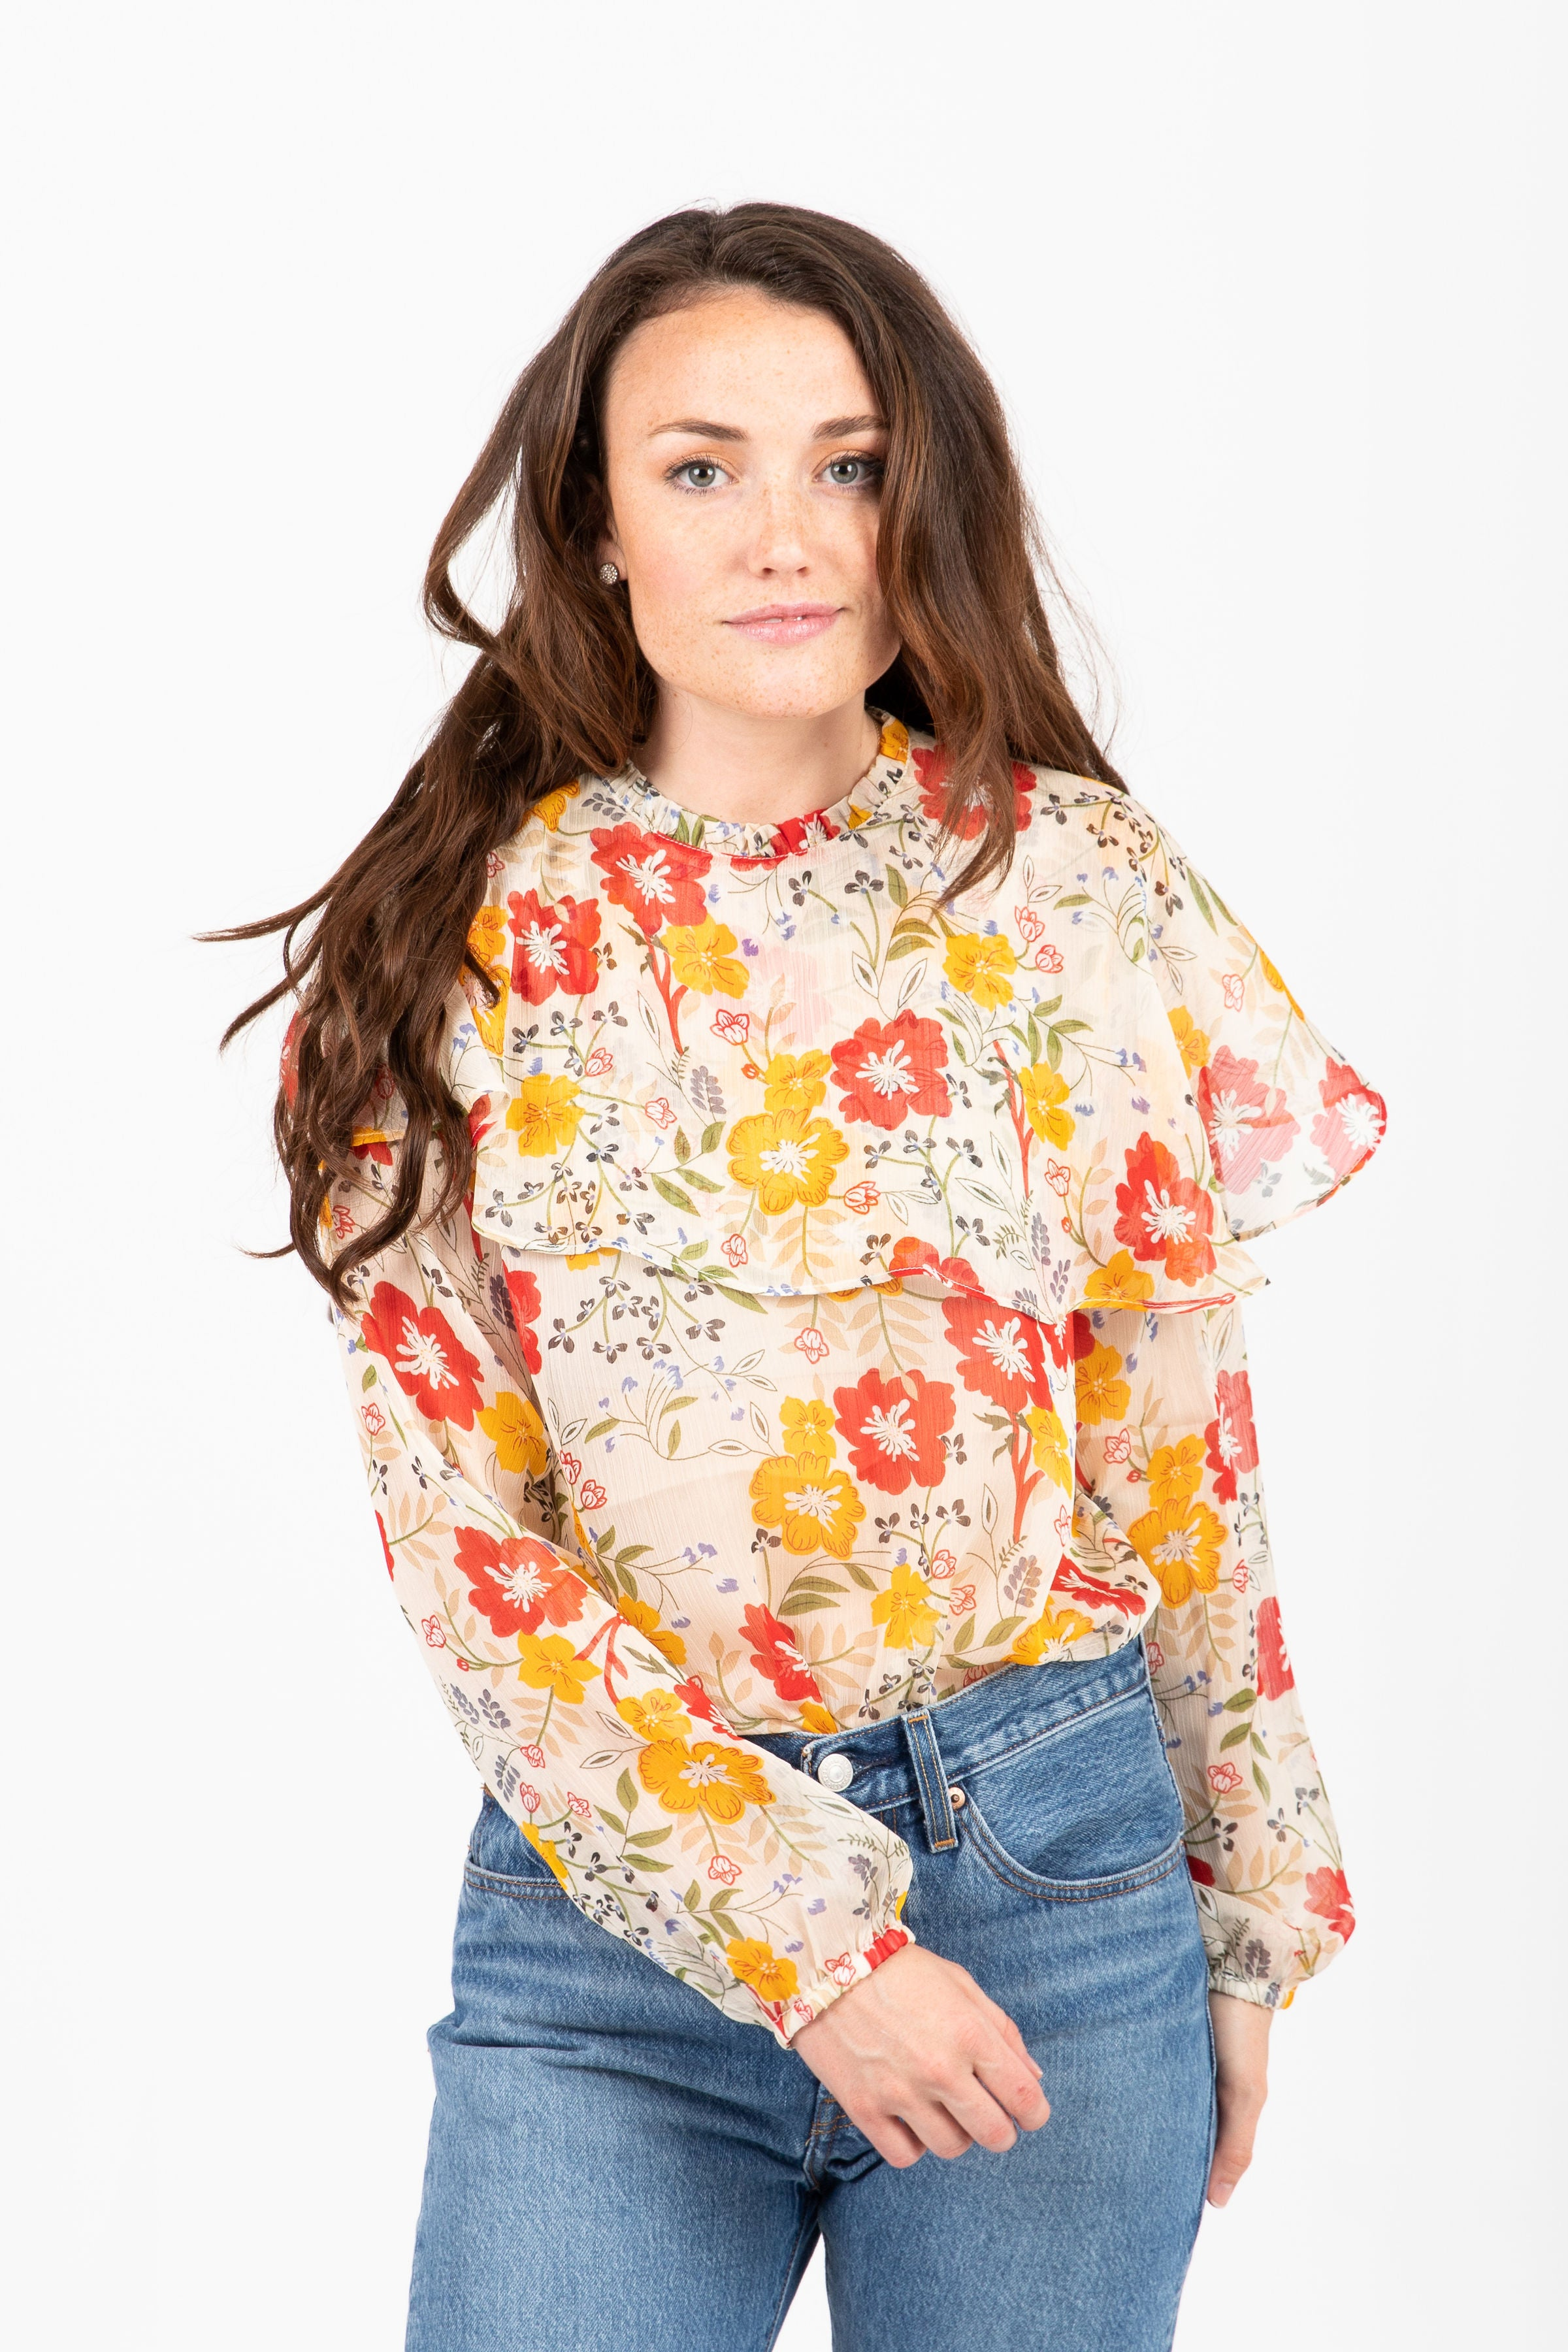 The Escape Floral Sheer Blouse in Ivory